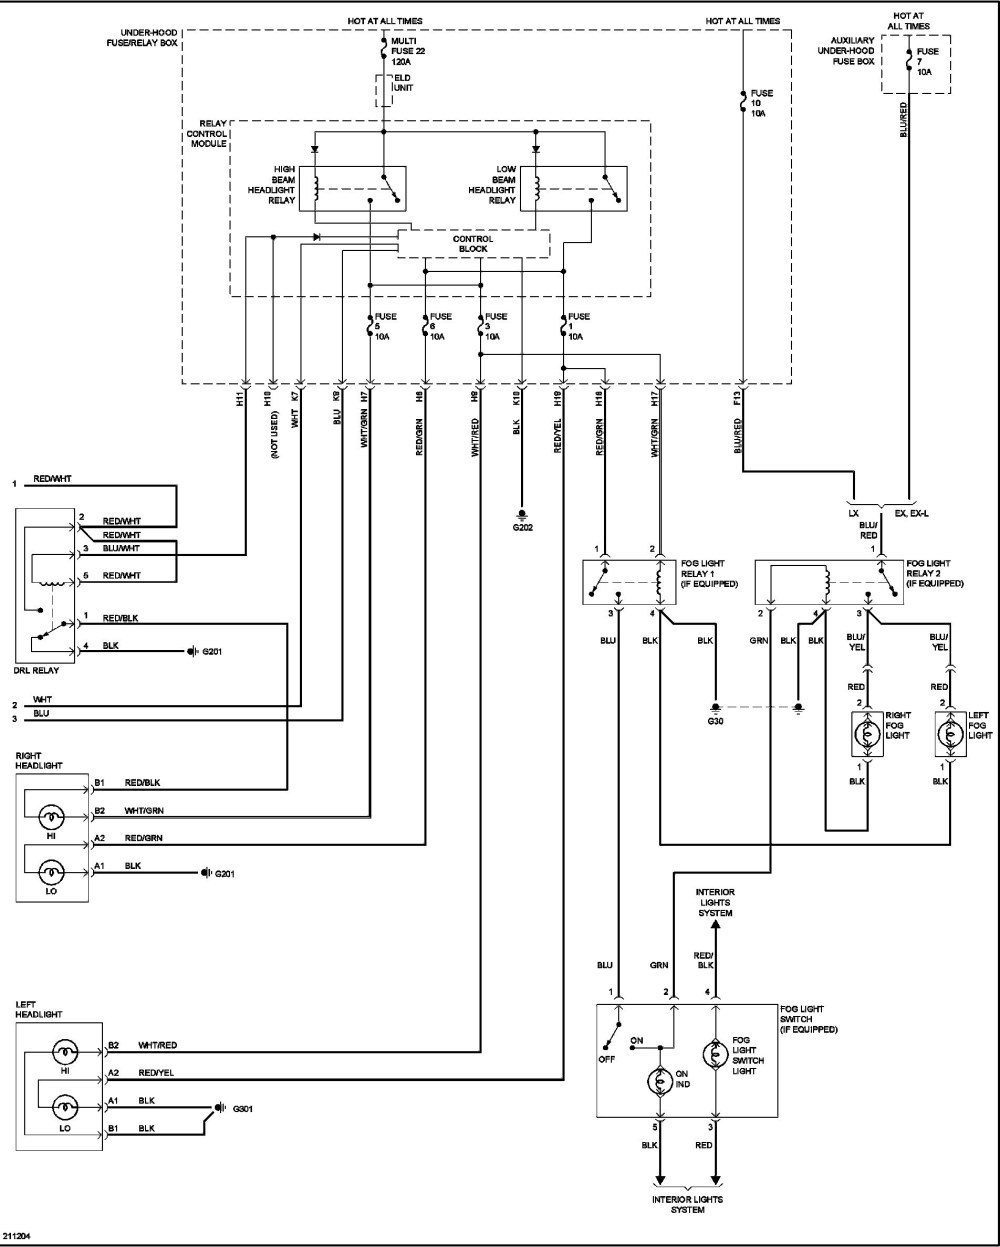 medium resolution of honda odyssey wiring wiring diagram img 2008 honda odyssey wiring diagram 2009 honda odyssey wiring diagram